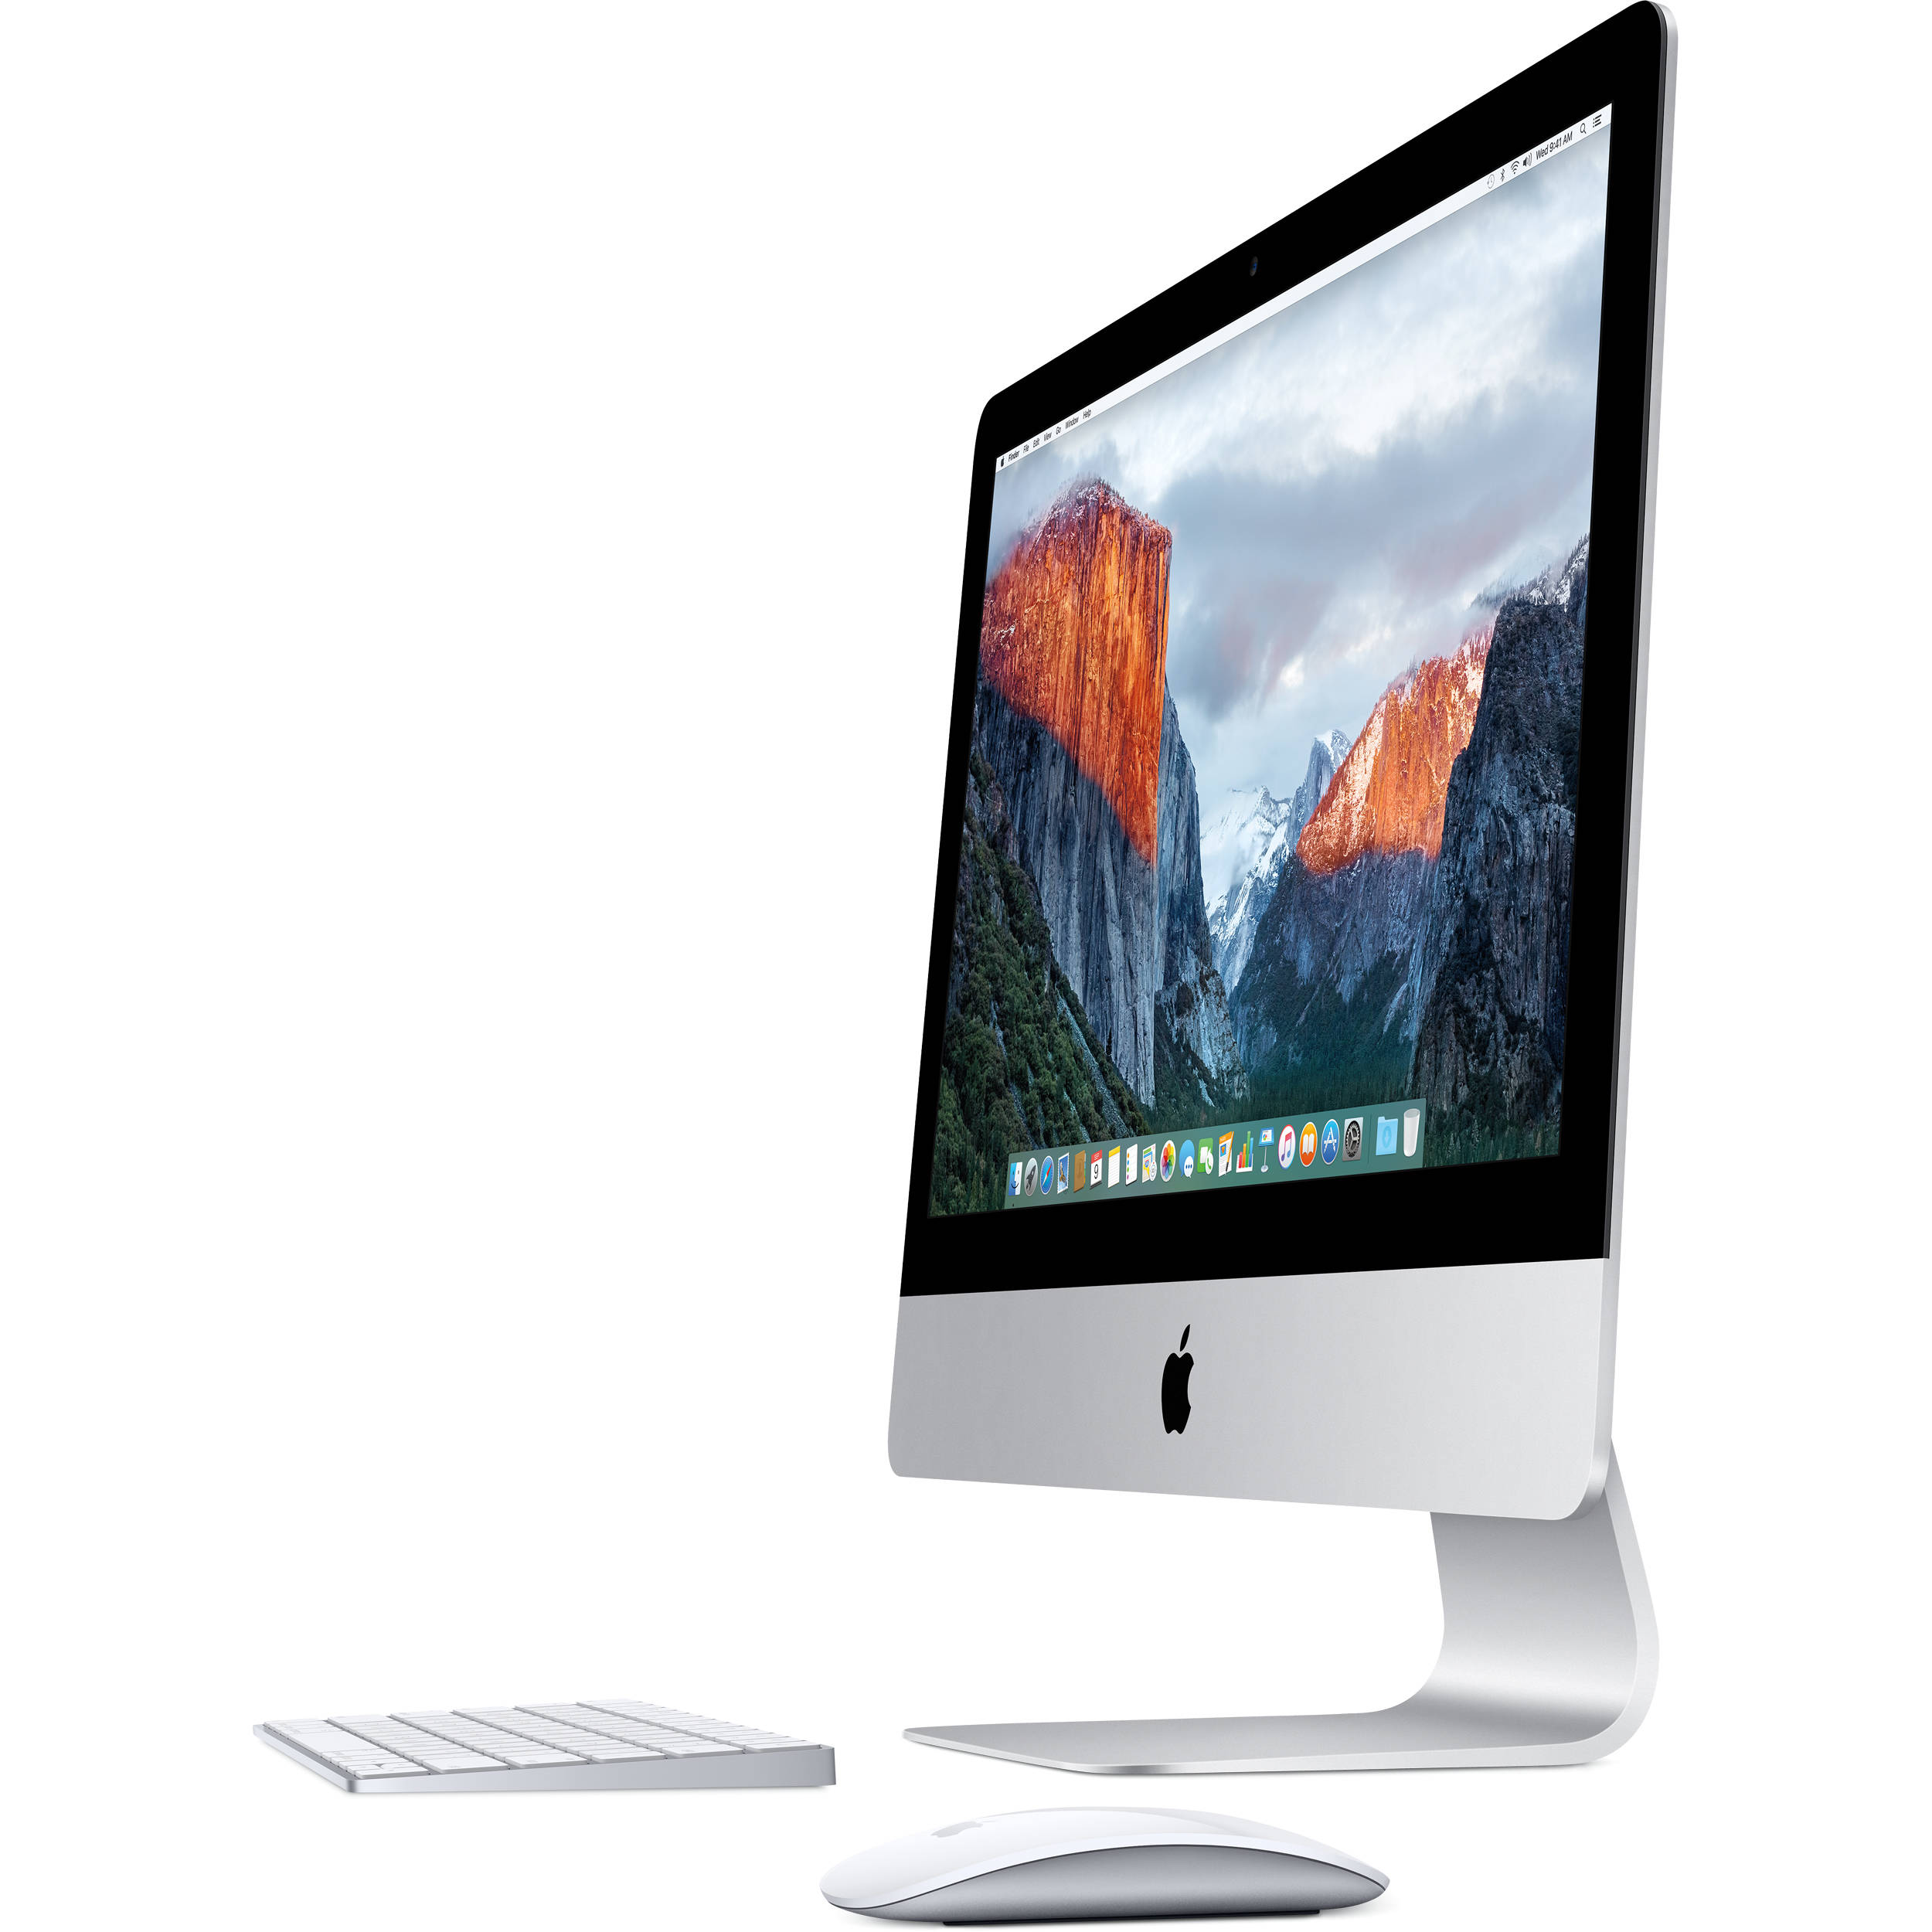 c product  REG apple mkll a imac late